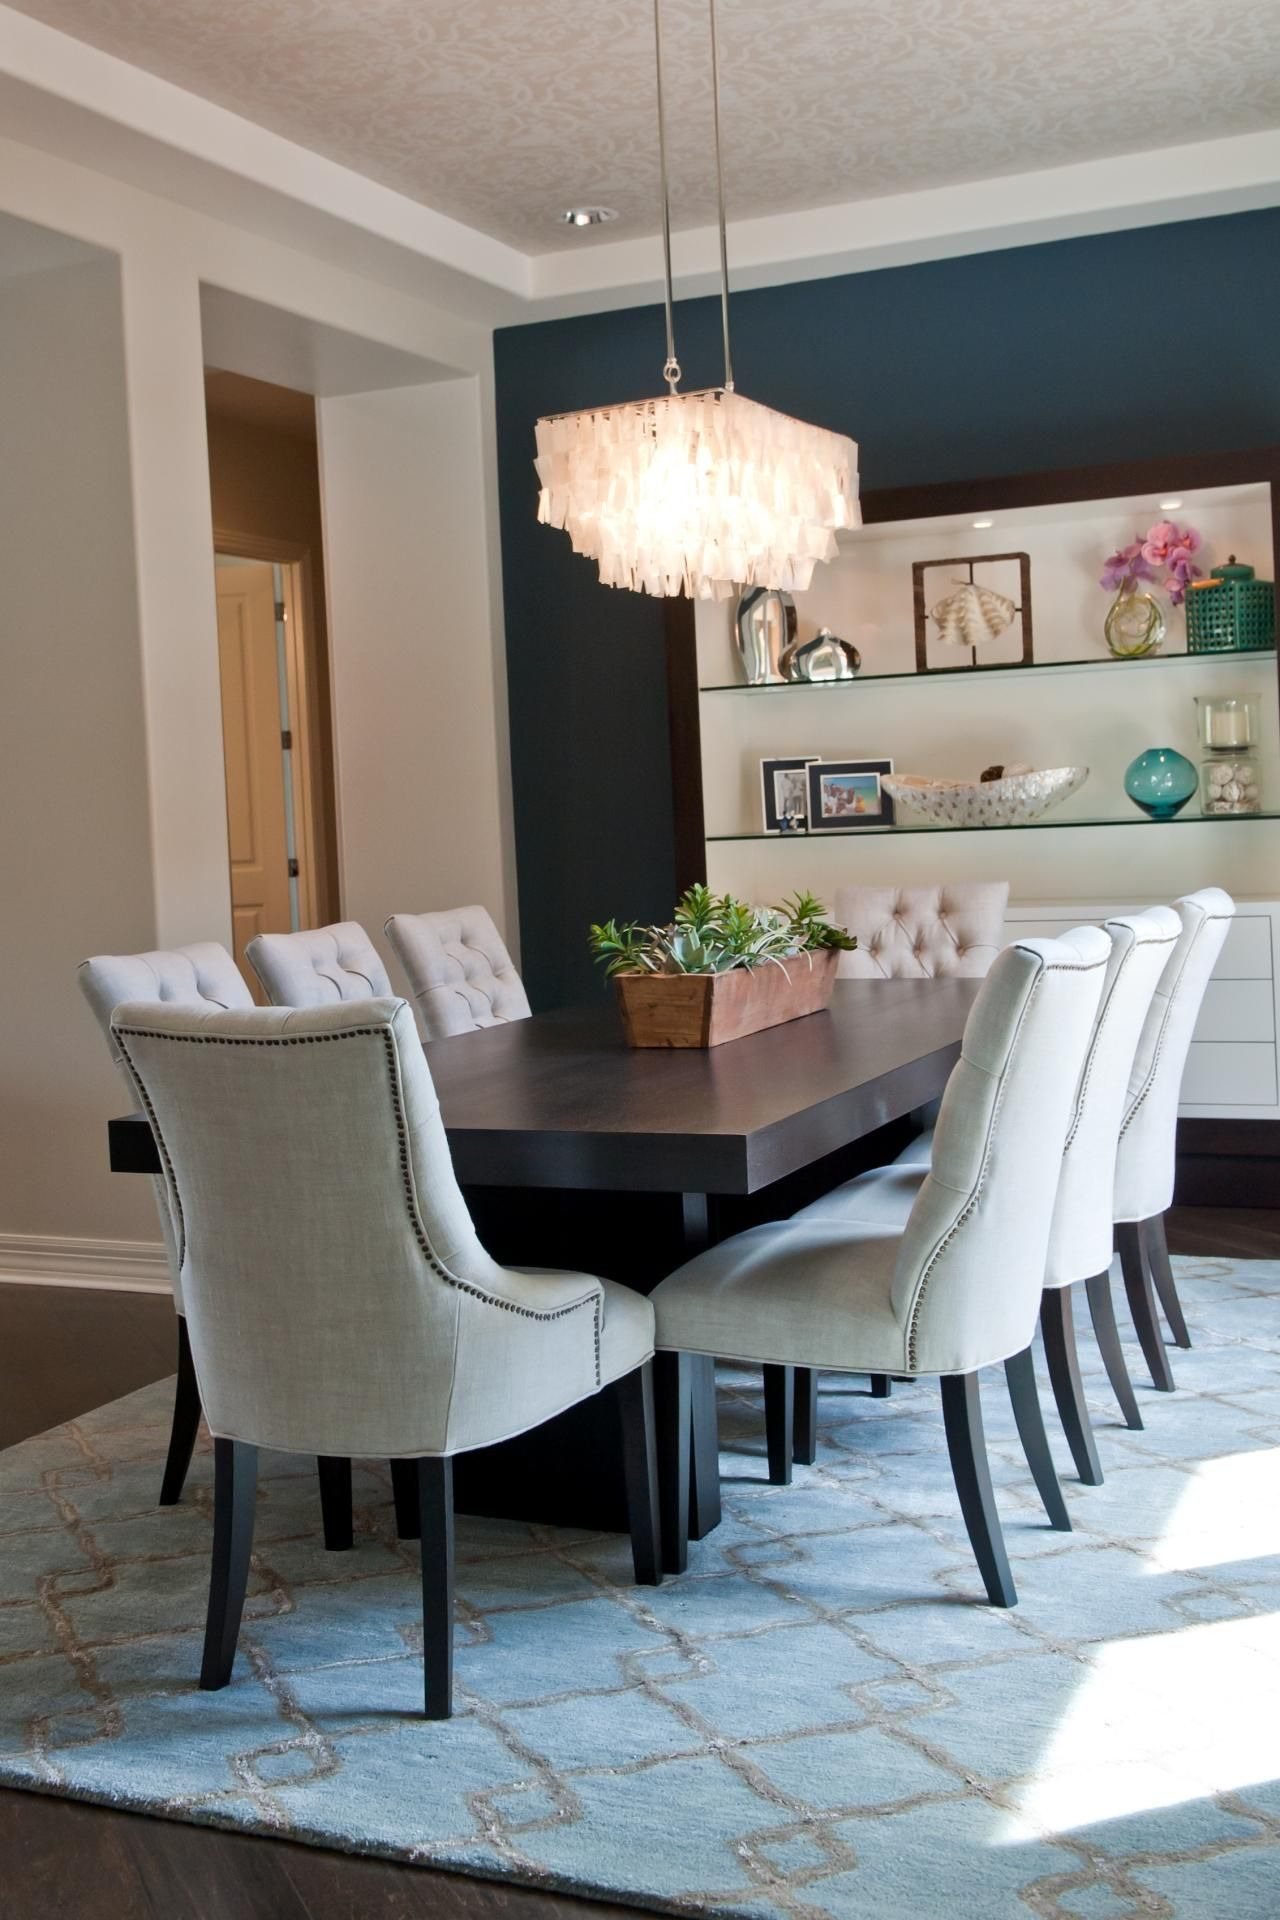 Delightful Eight Off White Tufted Chairs Surround A Dark Wood Table In This Chic Transitional  Dining Room. A Dark Blue Accent Wall Attracts The Eye To The Built In ...